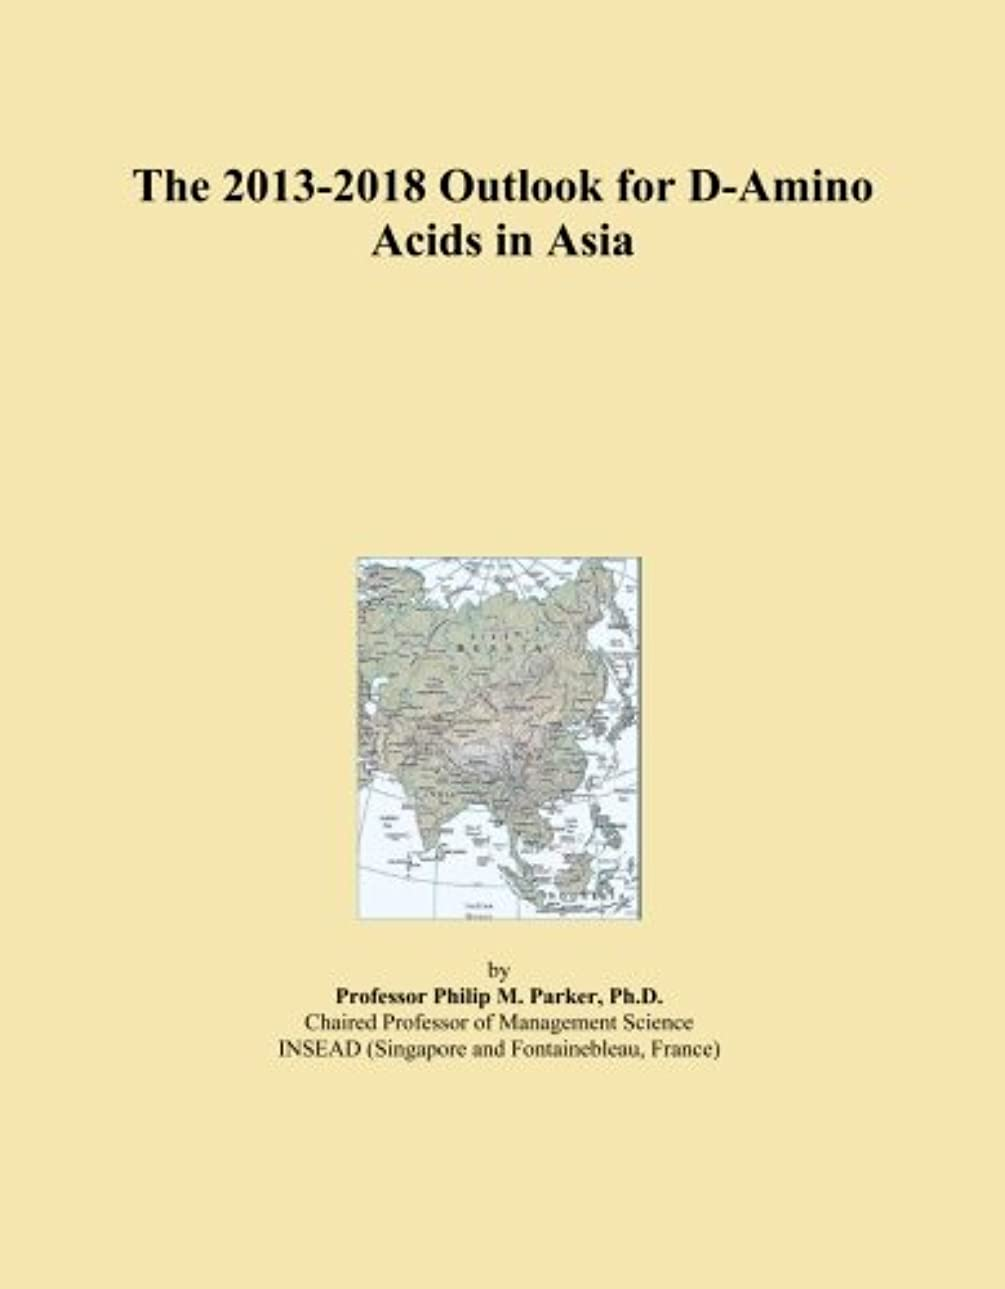 ごみ小売前兆The 2013-2018 Outlook for D-Amino Acids in Asia